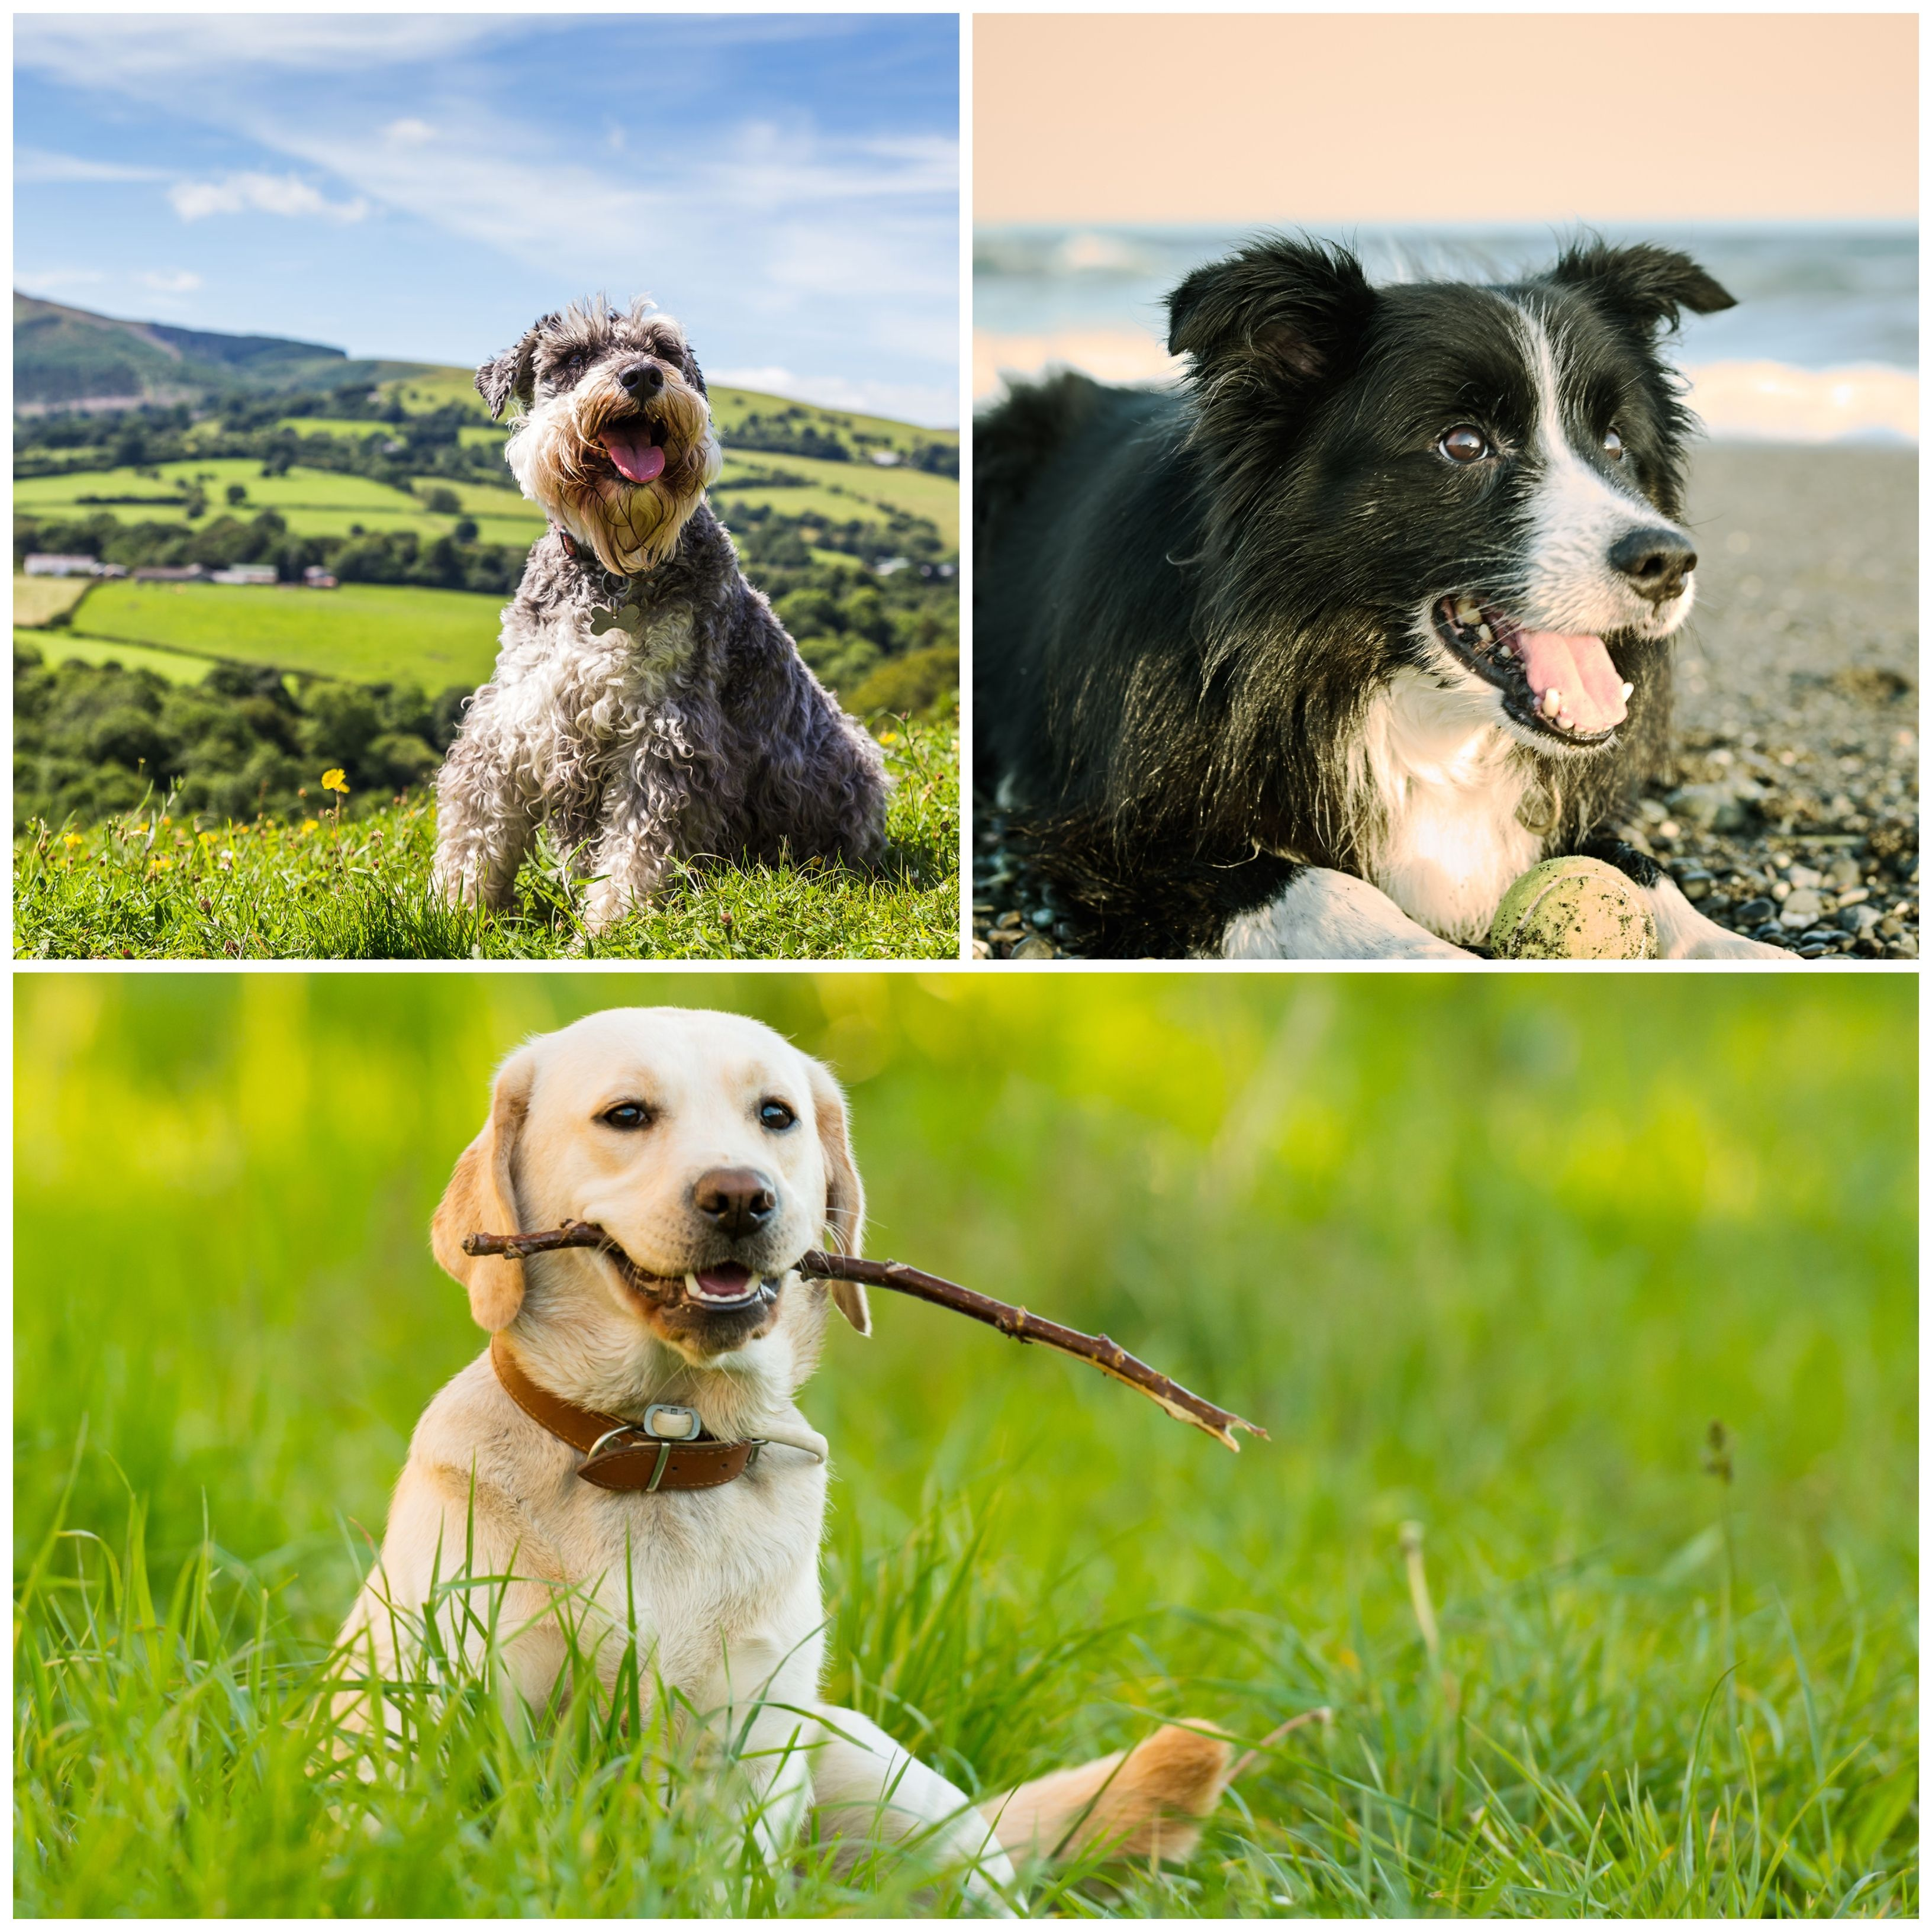 6 Dog Breeds That Are Easy To Train How To Train A Dog